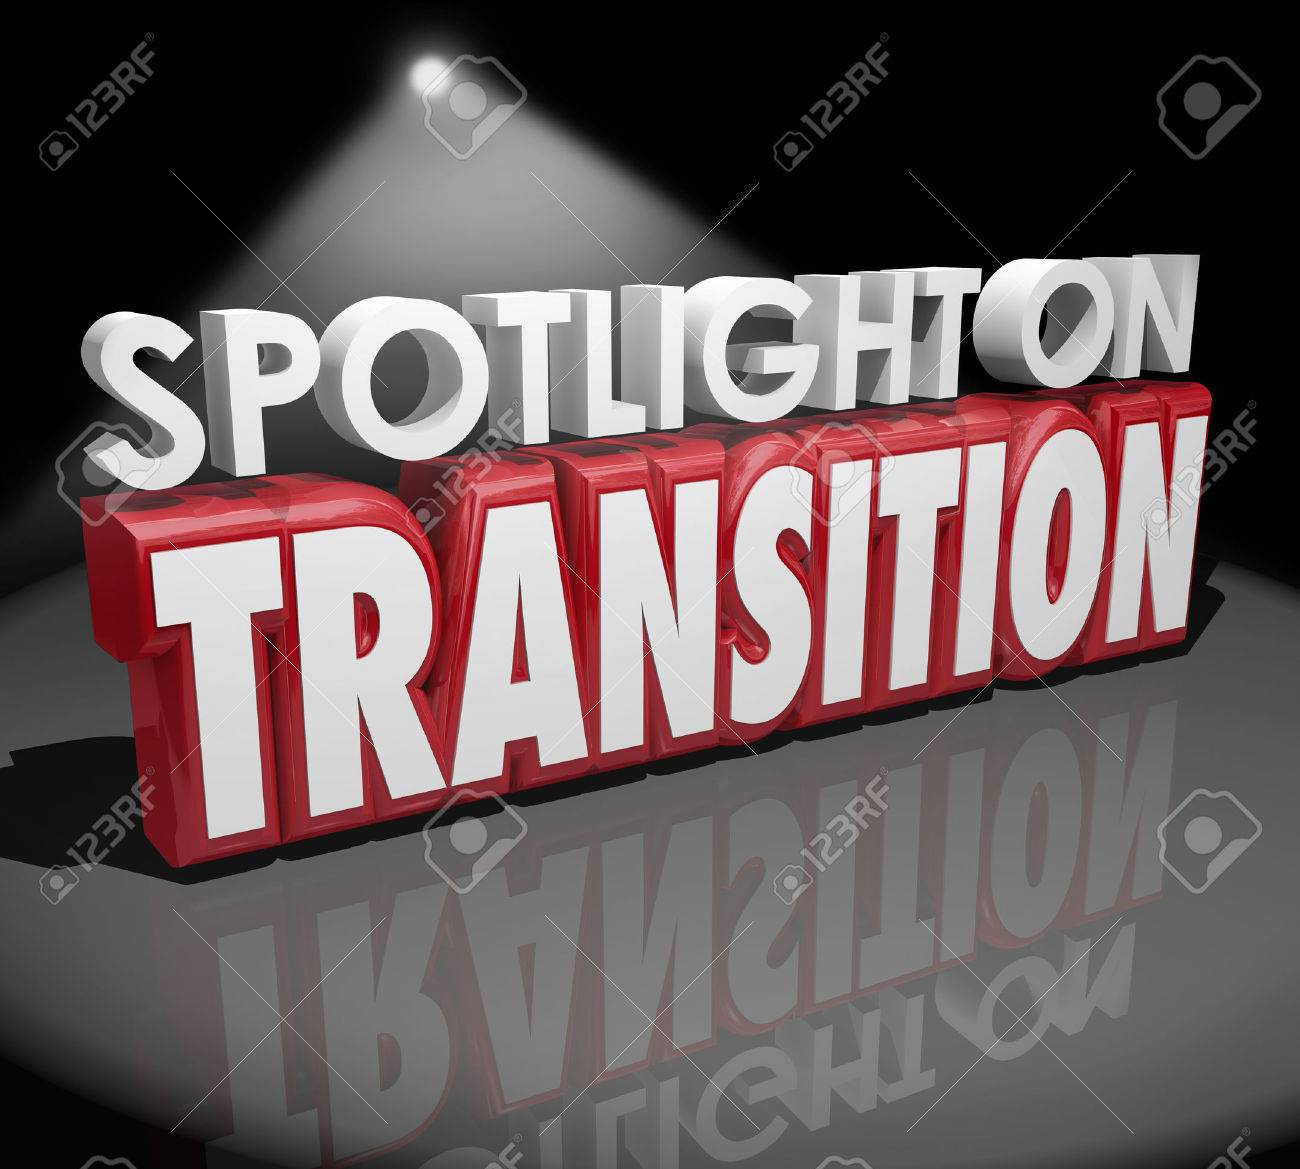 Spotlight on Transition words in 3d letters to illustrate change or different transformation - 41725898